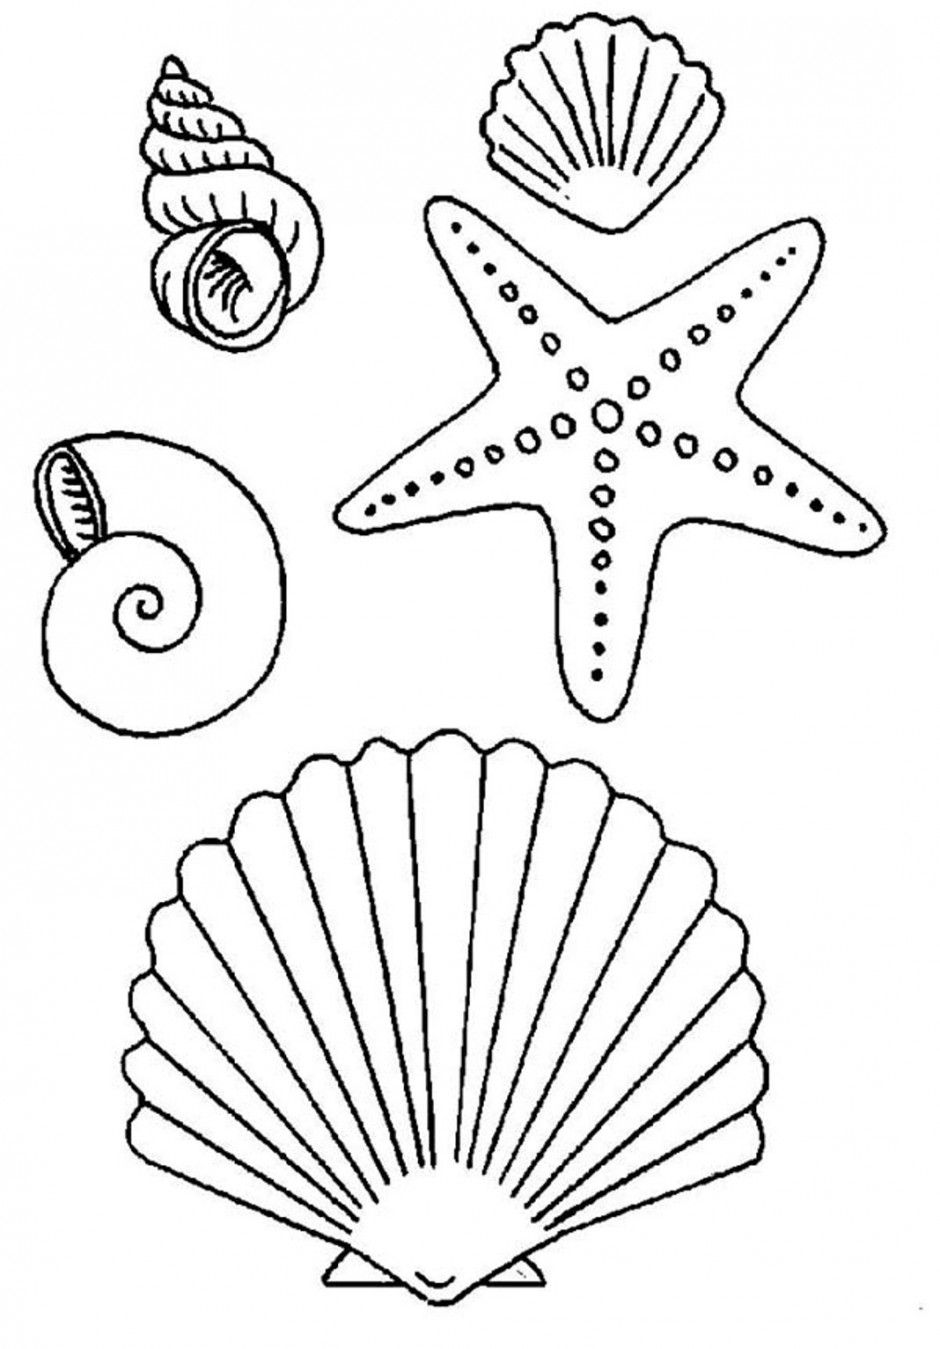 Free Printable Starfish Coloring Pages - DopePicz | Ocean ...